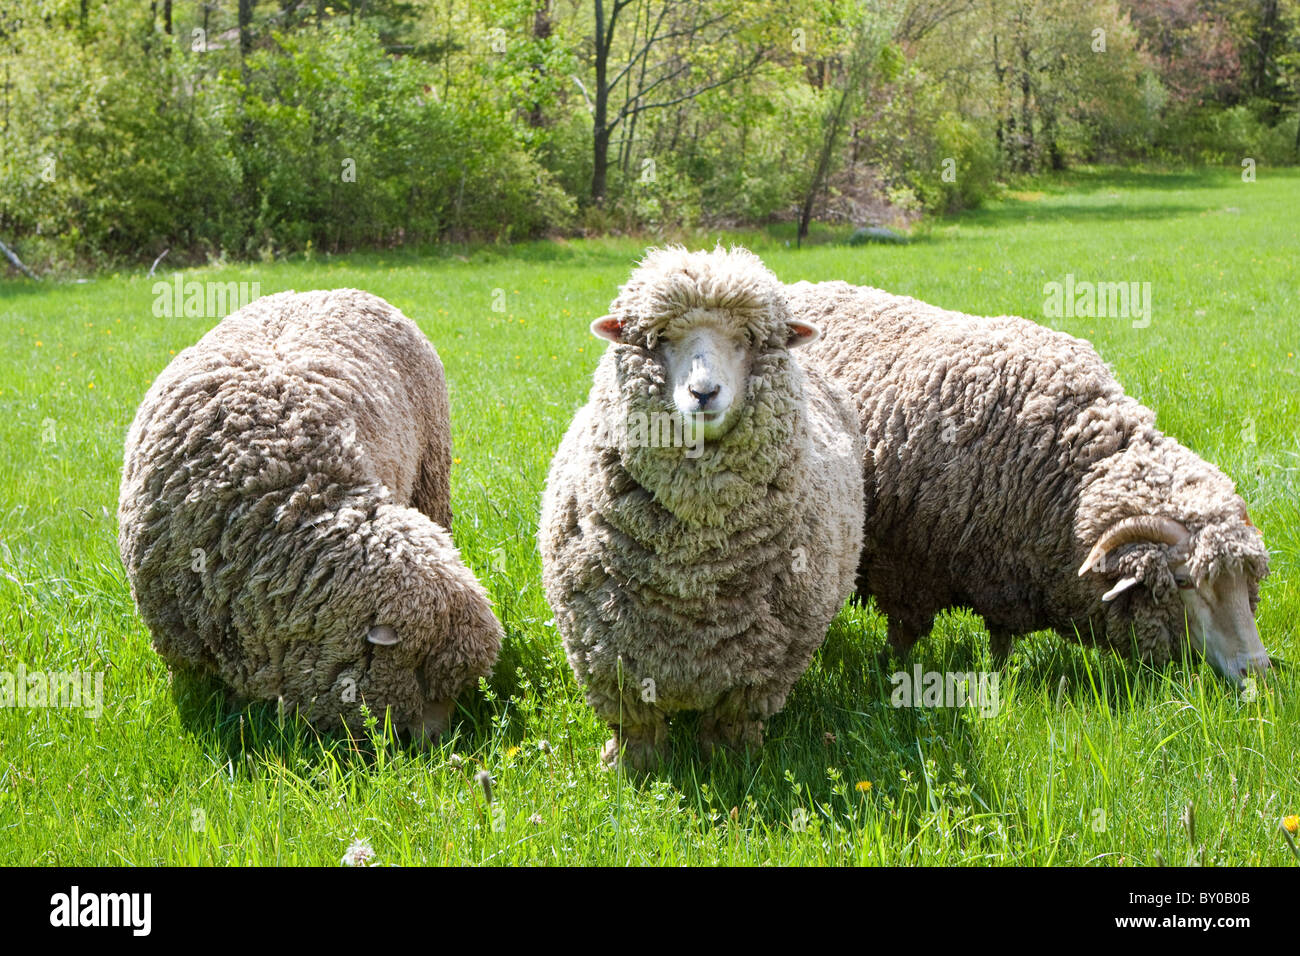 Three Sheep in a green field - Stock Image